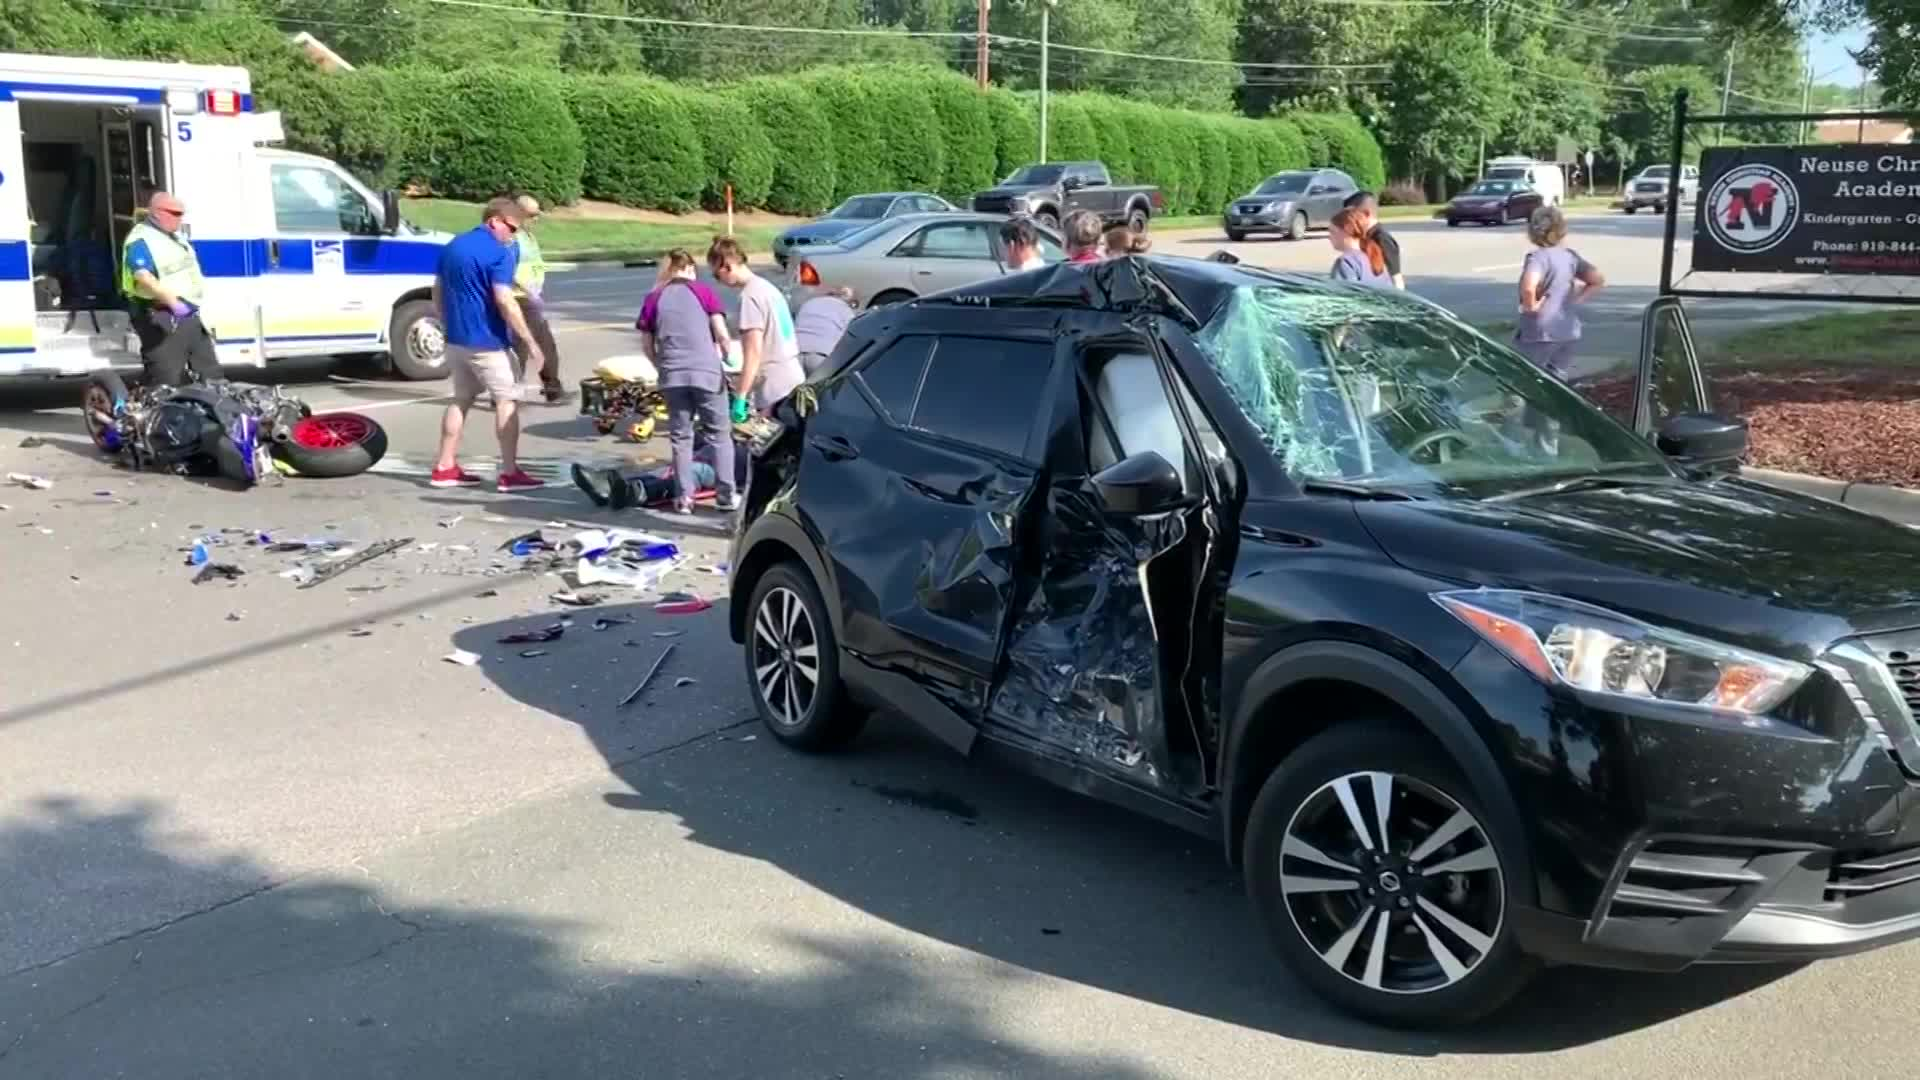 RAW VIDEO: Motorcycle slams into SUV on Falls of Neuse Road